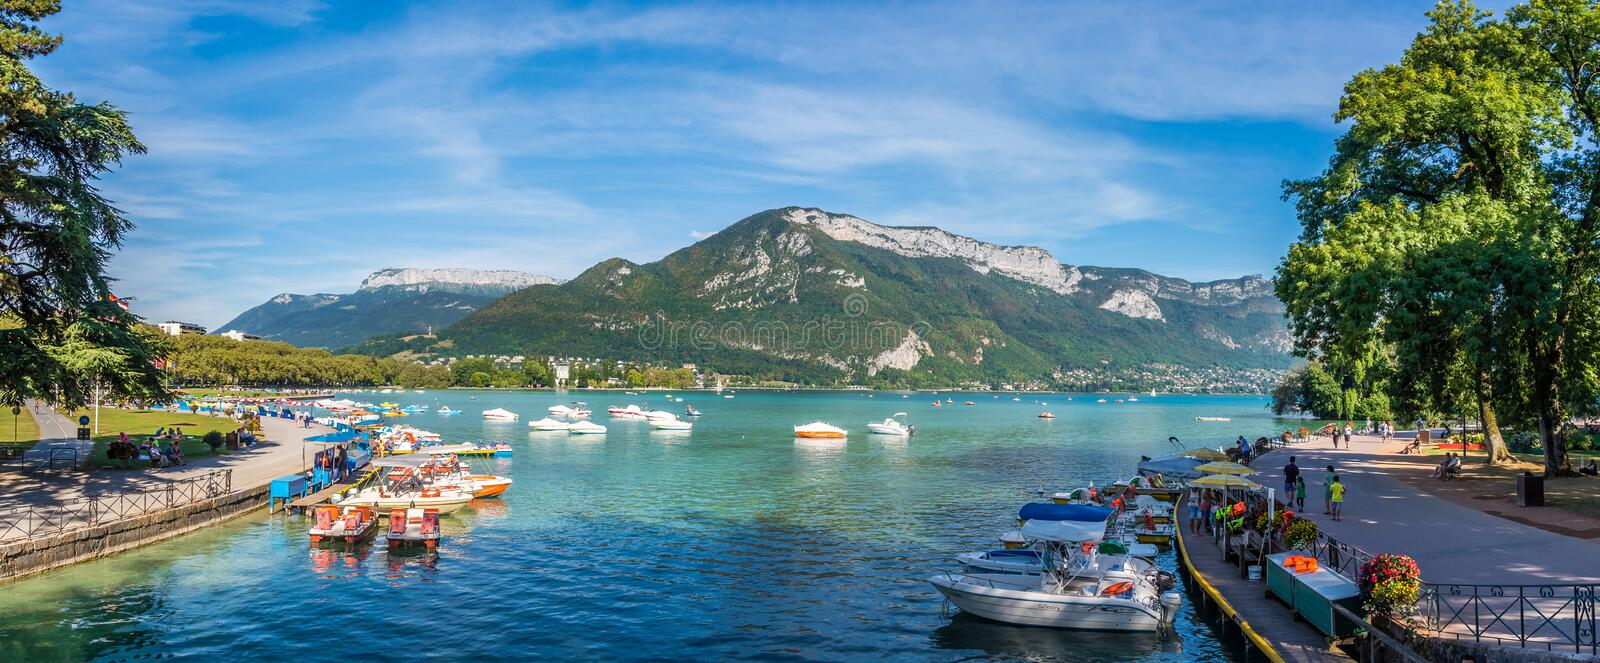 Panoramic view at the Lake Annecy in France royalty free stock images